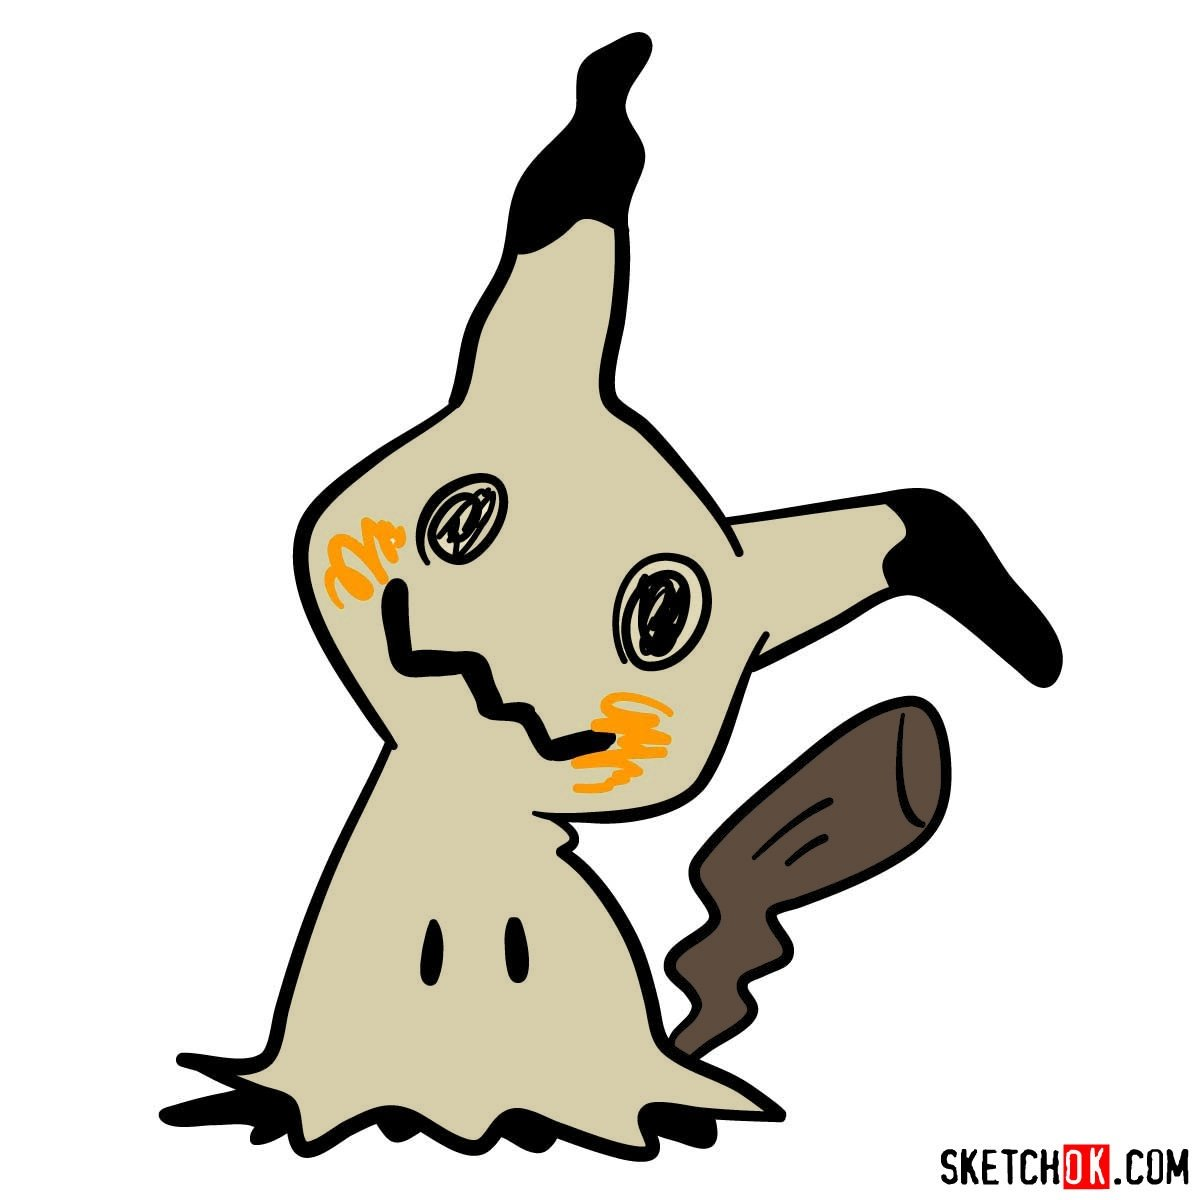 How to draw Mimikyu ghost pokemon (looks like Pikachu)